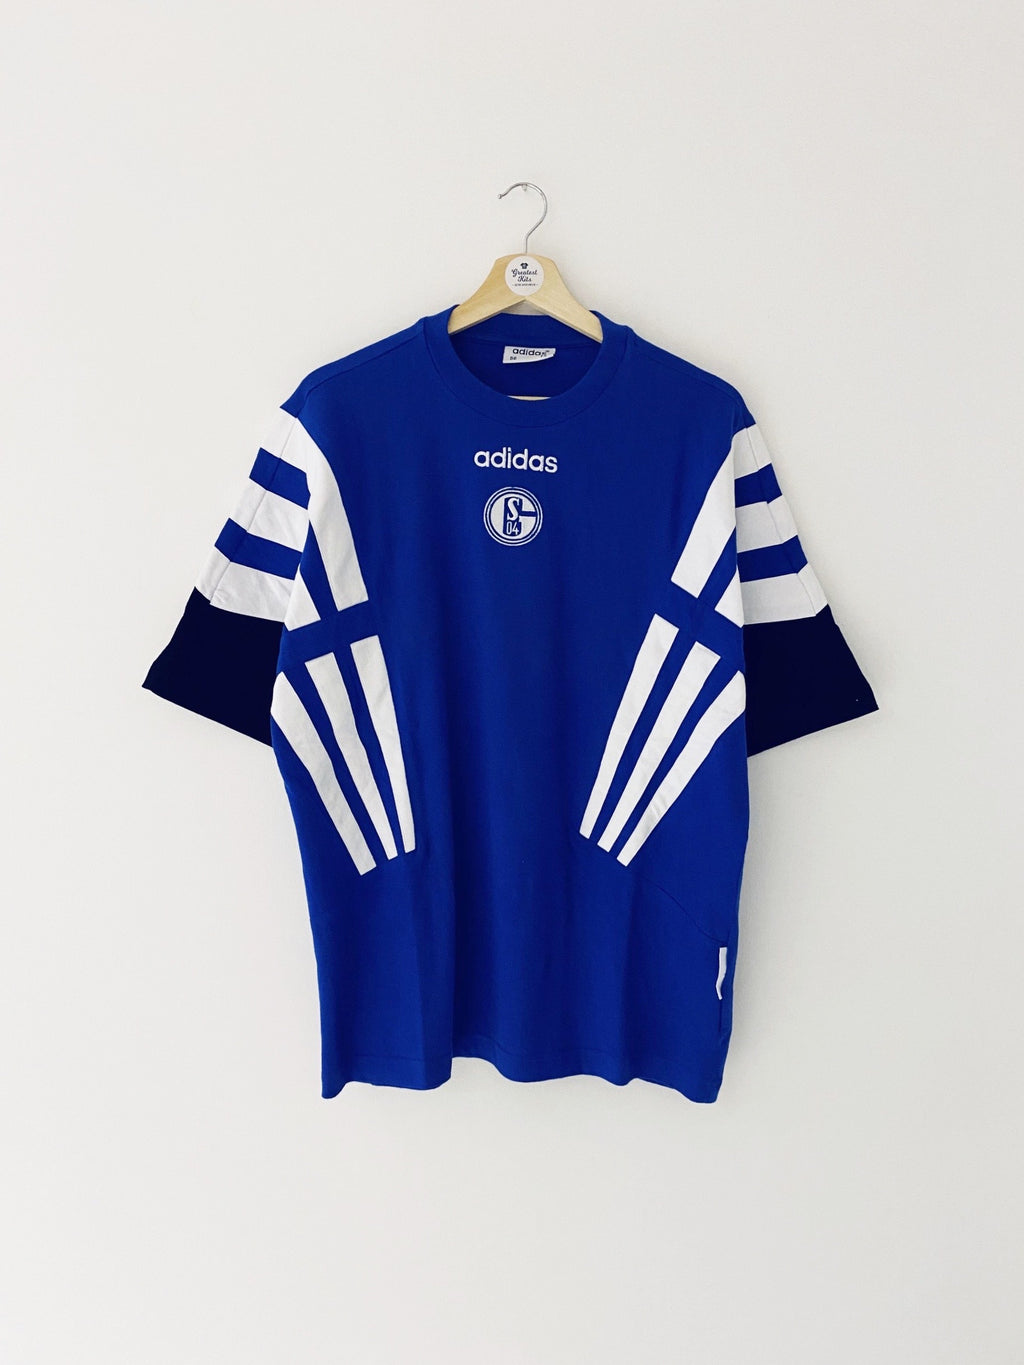 1995/96 Schalke Training Shirt (M/L) 9.5/10